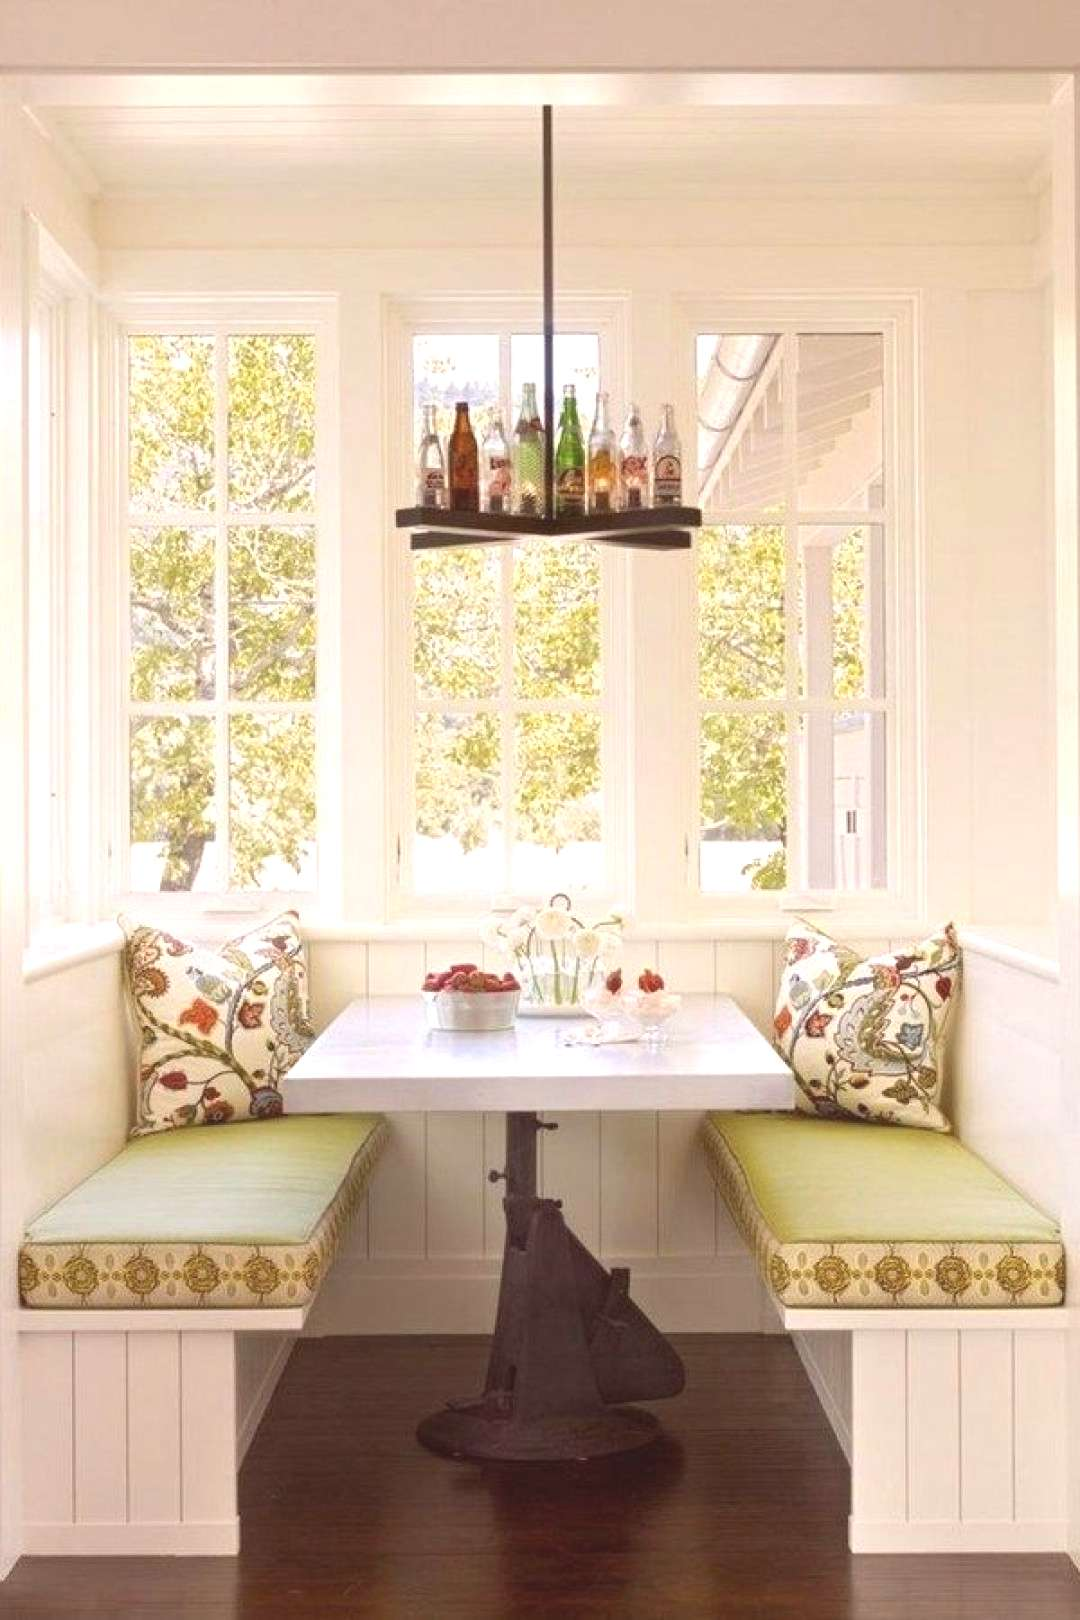 36 Casual Nooks Design Ideas Youll Want To Crawl, 36 Casual Nooks Design Ideas Youll Want To Crawl